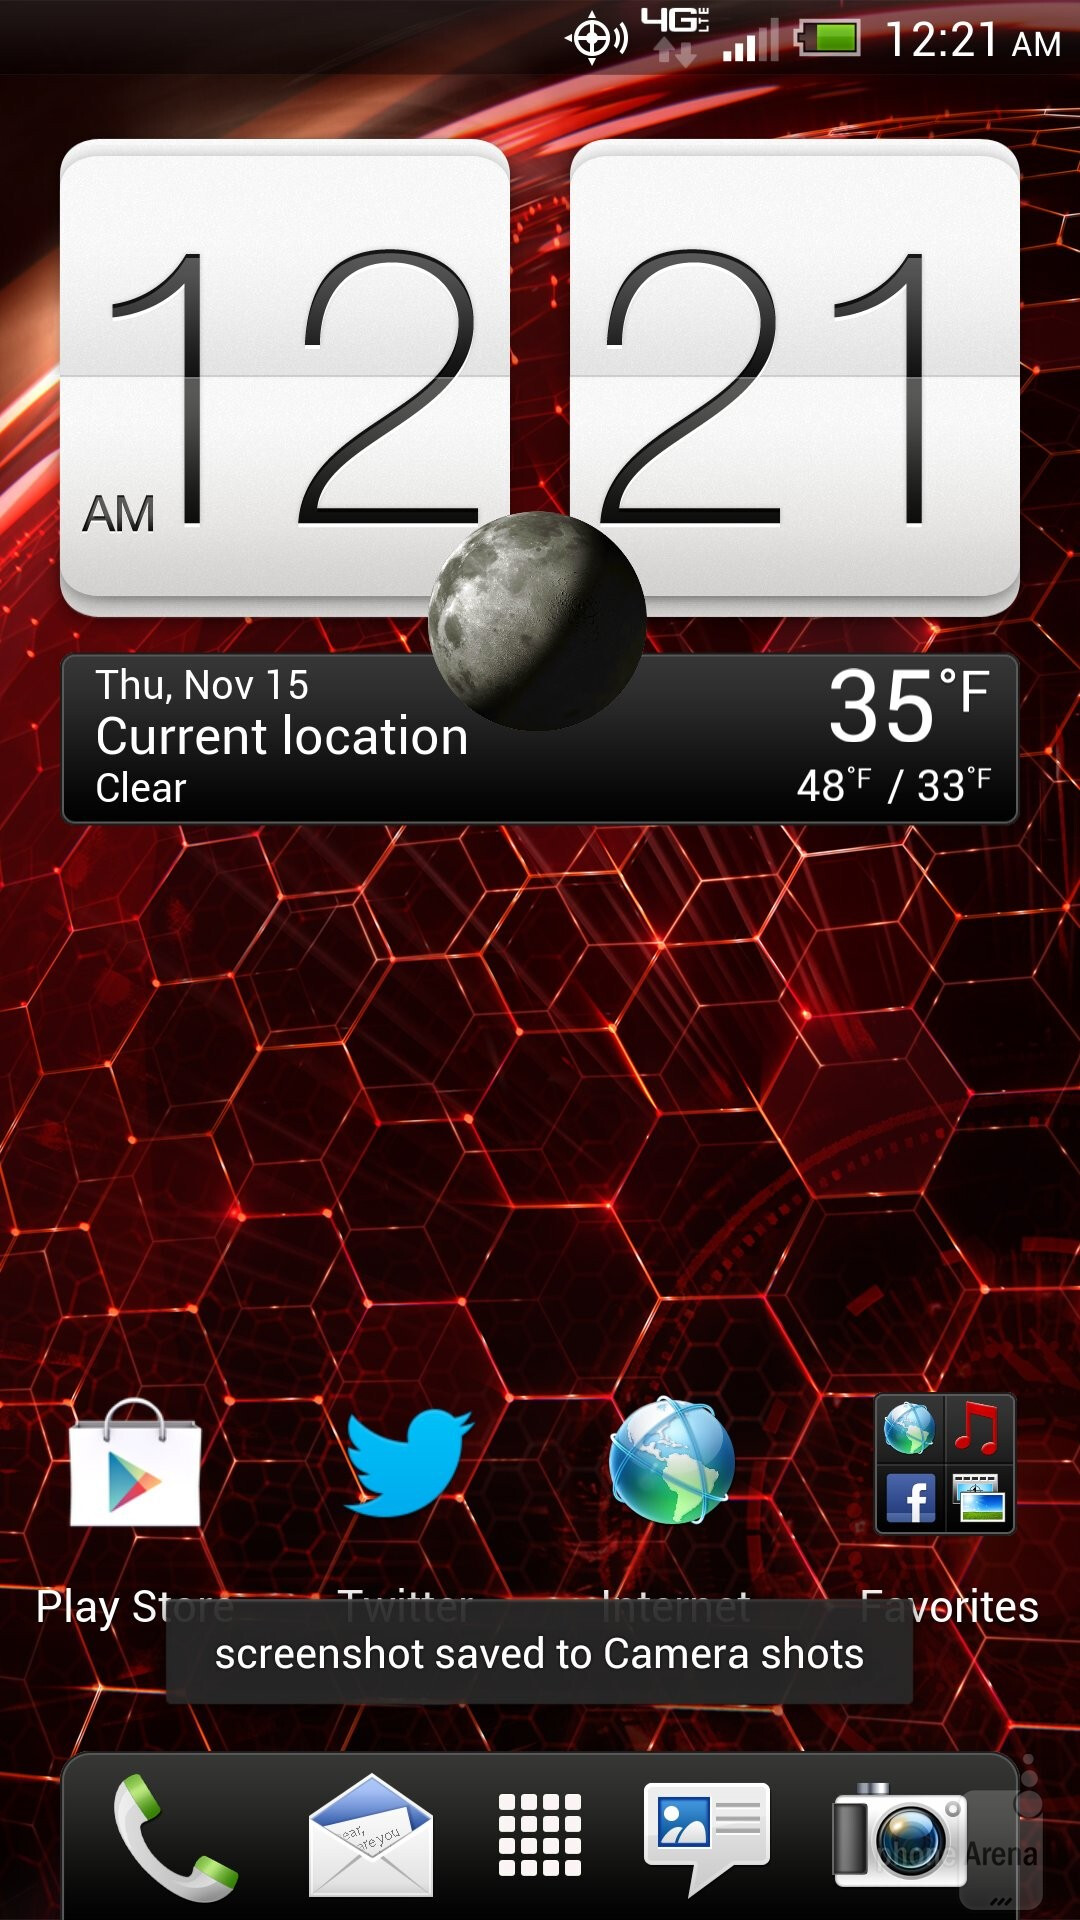 Droid Dna Wallpaper The Htc Droid Dna Comes With